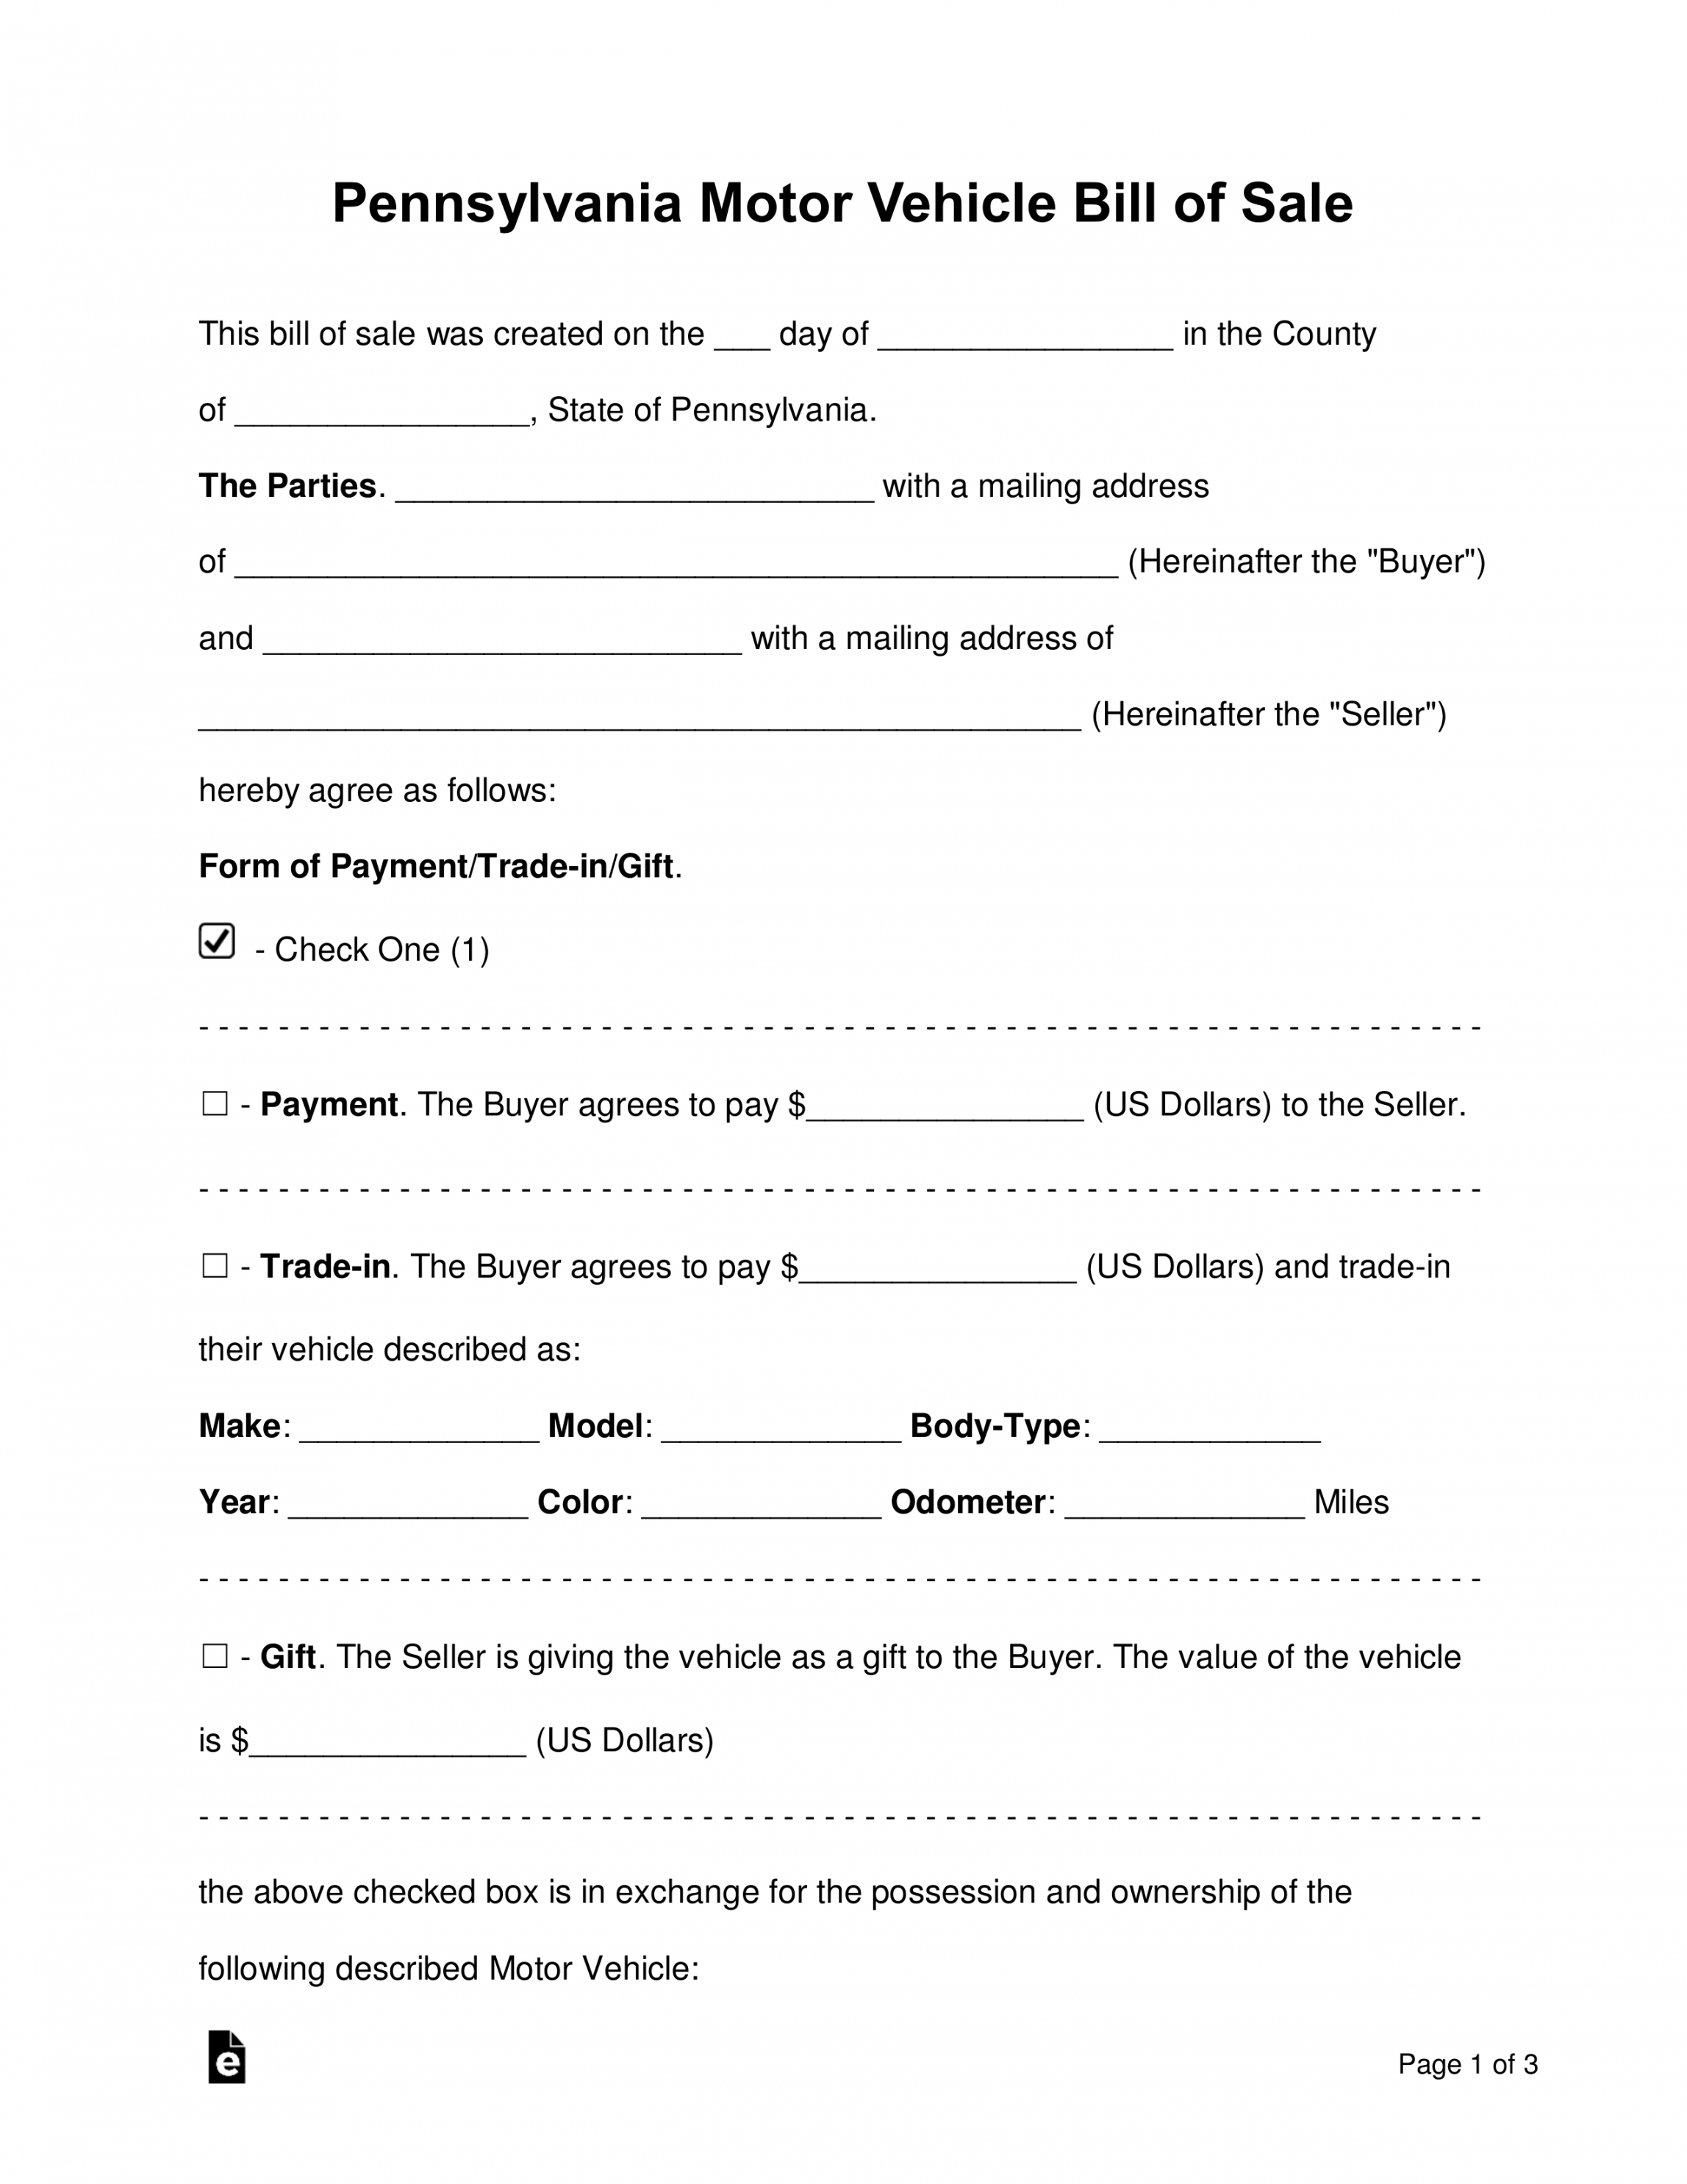 free free pennsylvania motor vehicle bill of sale form  word deposit form for vehicle purchase doc